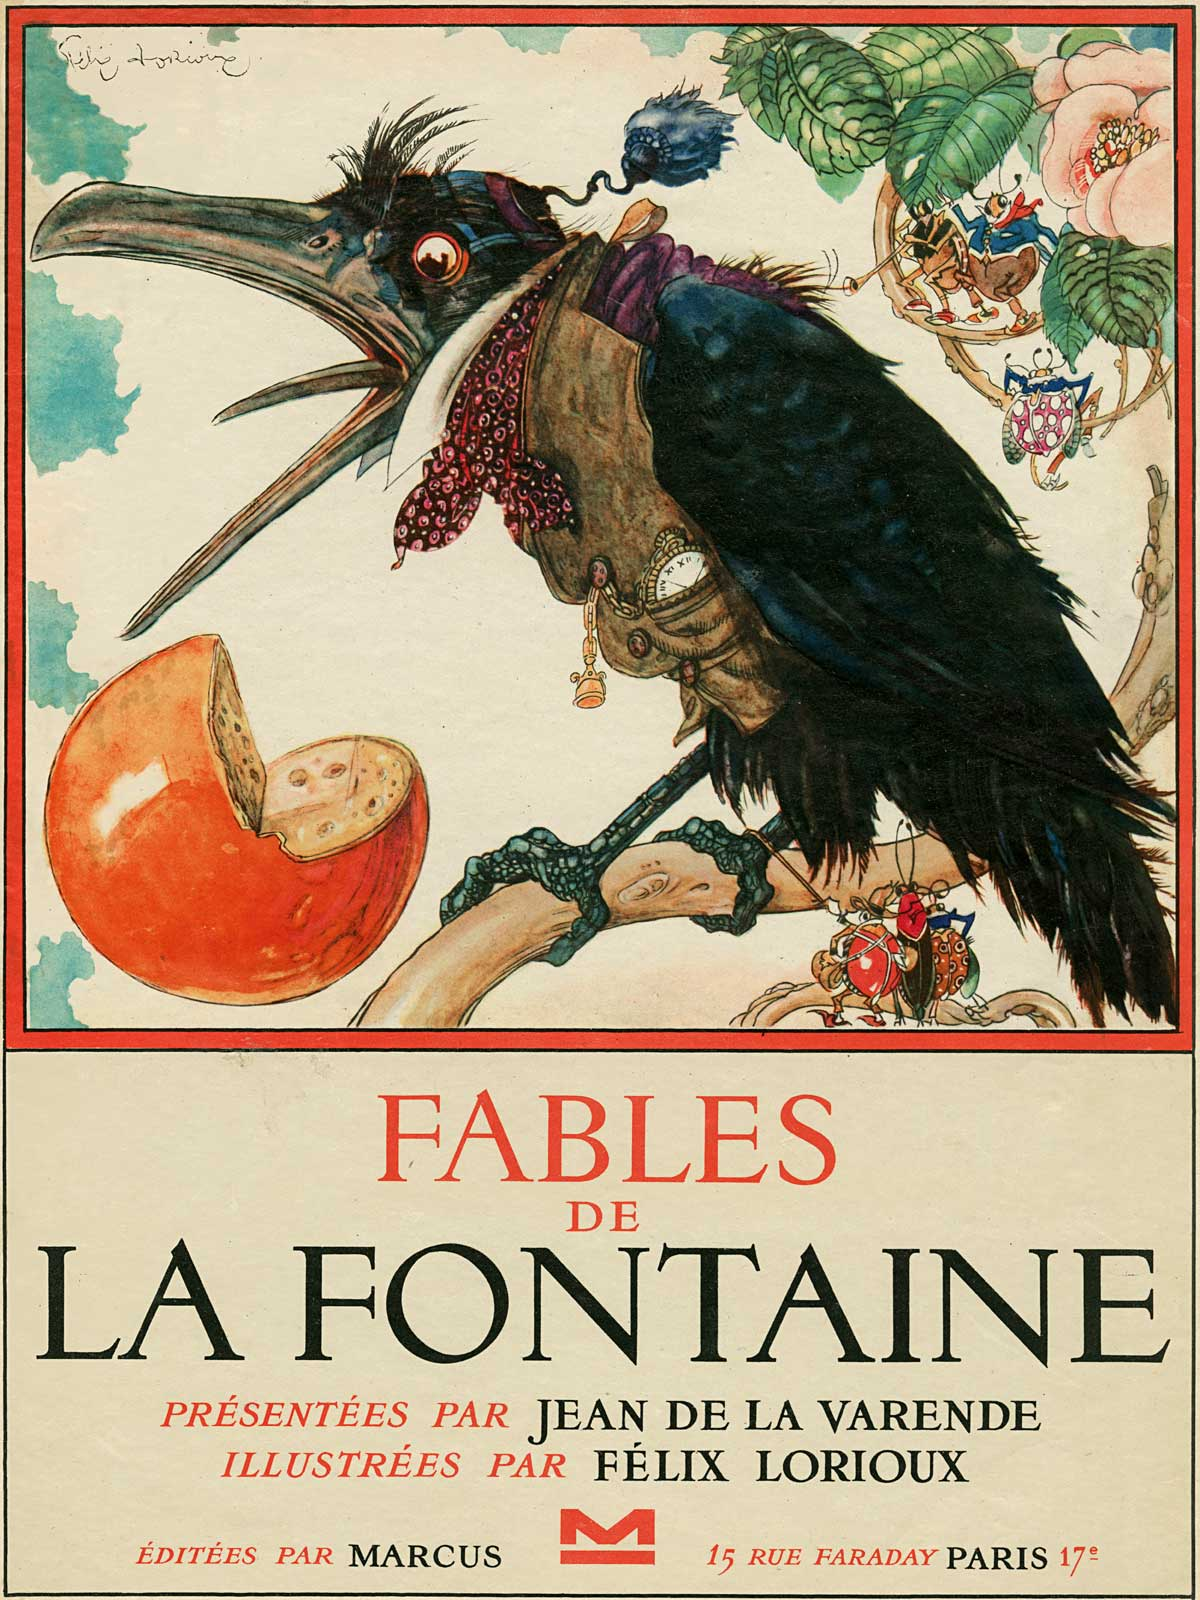 Fables illustrated by FélixLorioux. (EmptyMansionsBook.com)